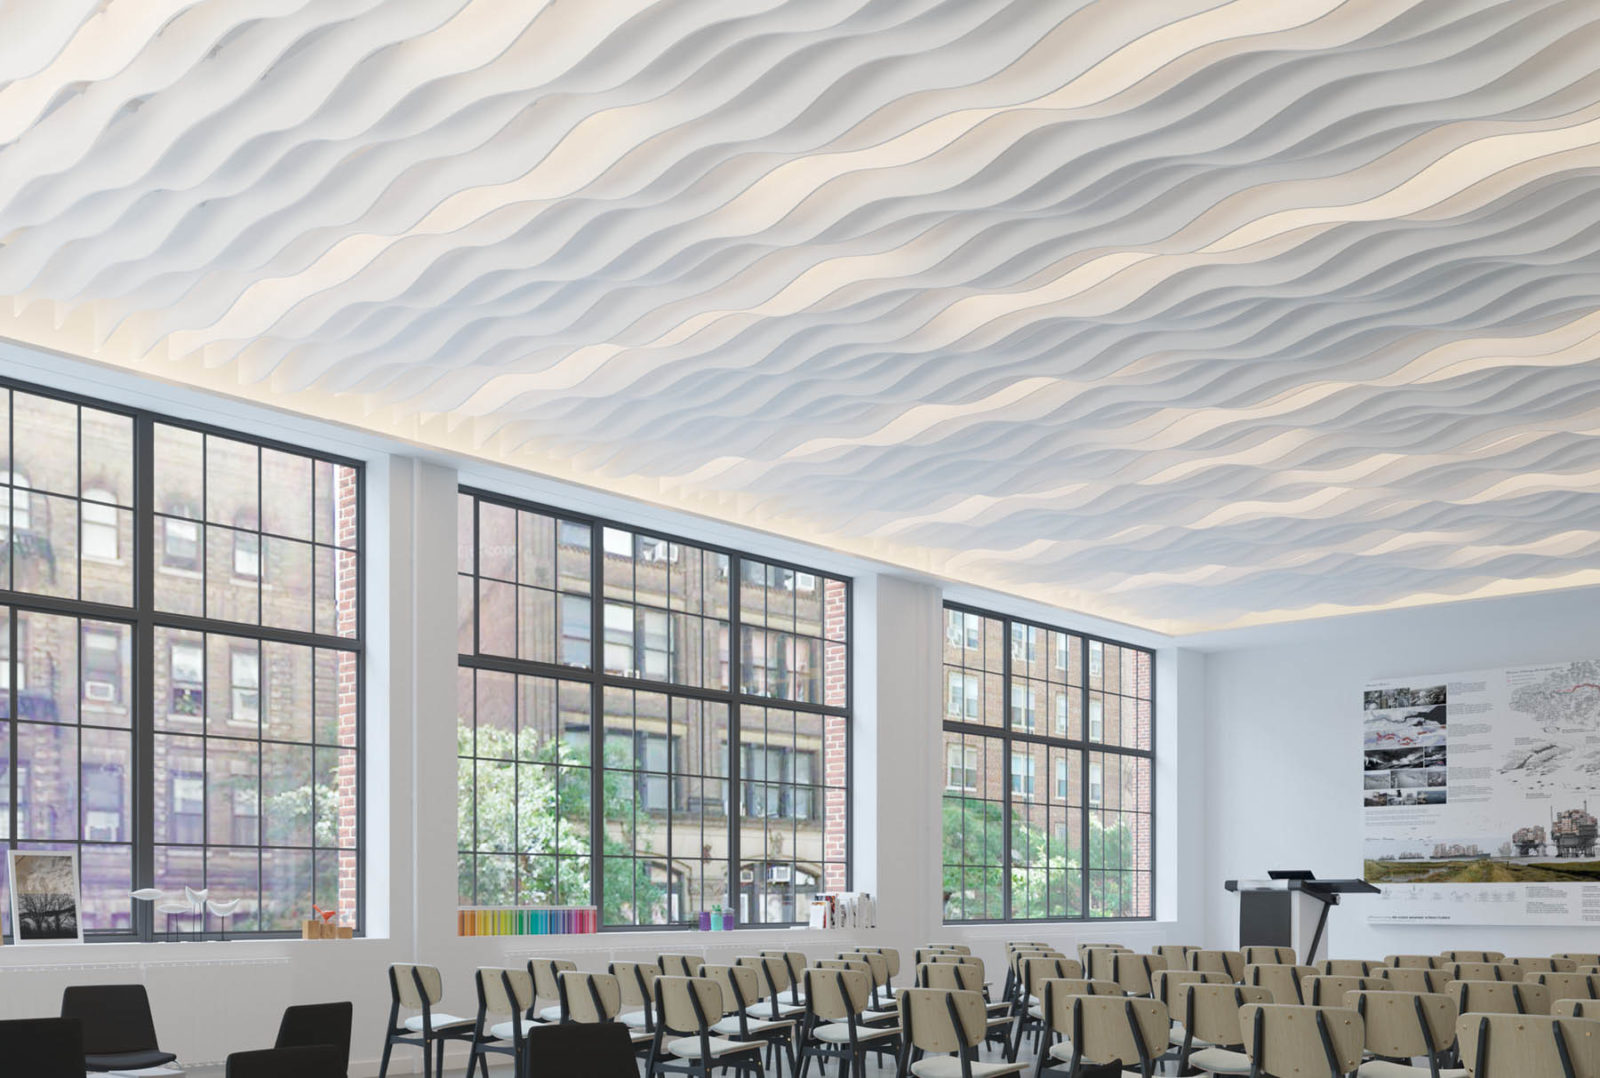 Most Effective Acoustic & Illumination Commercial Ceilings Products